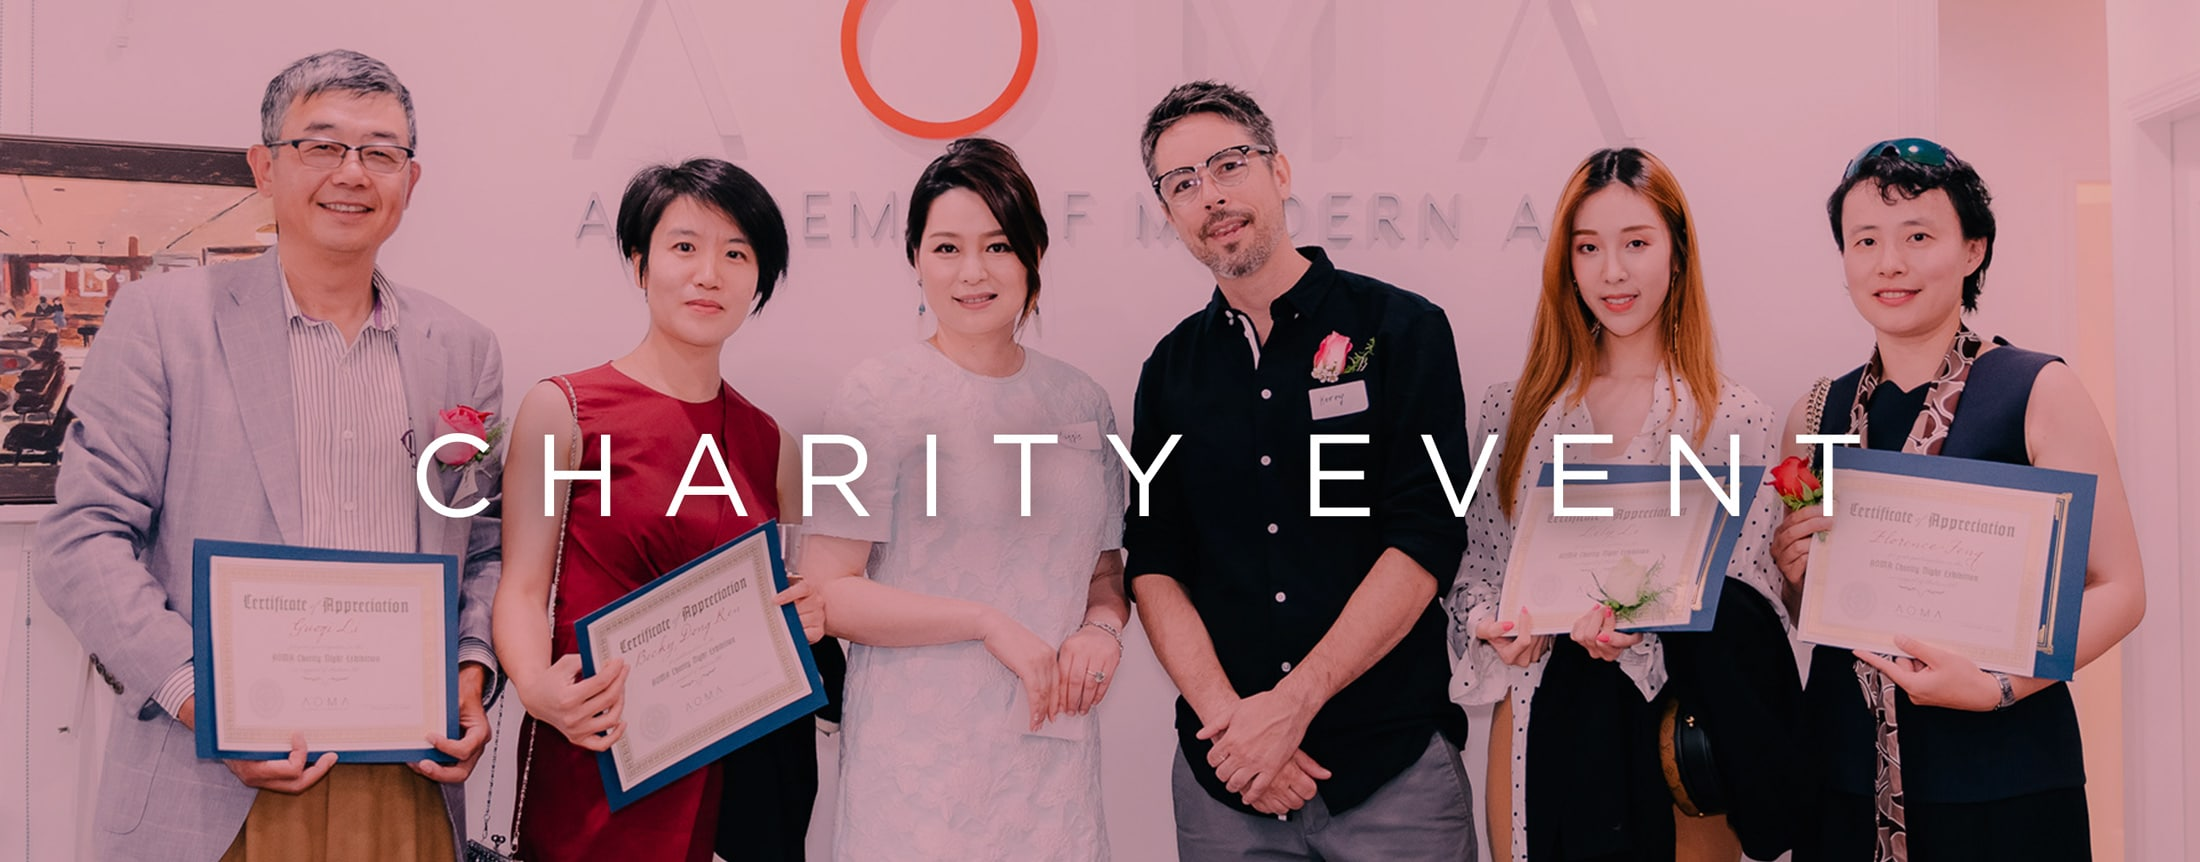 Slider - Charity Night Event Photos 2